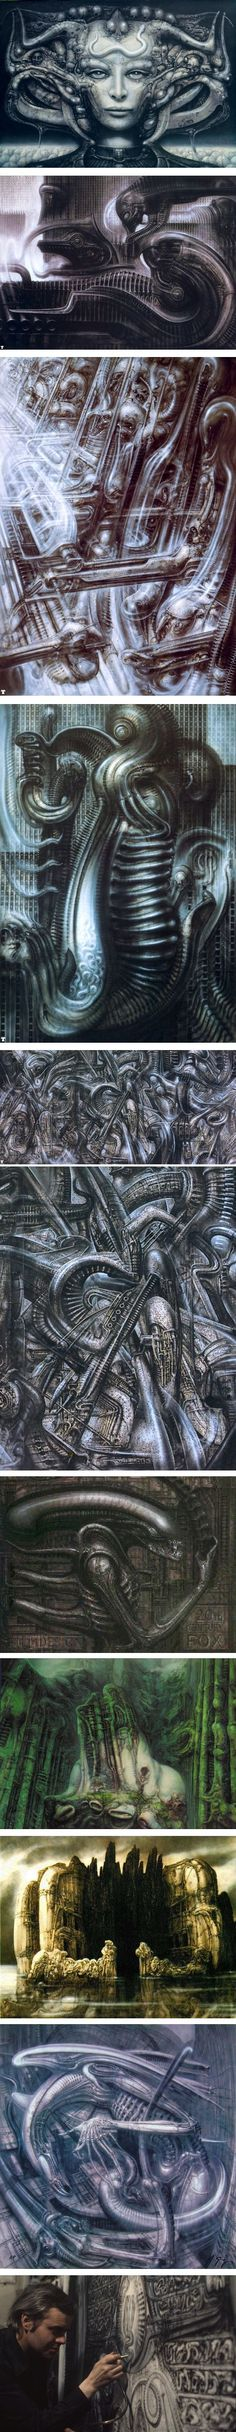 H. R. Giger is also gone. Many will consider him to be of darkness, but some how even his stuff shines because of his originality.